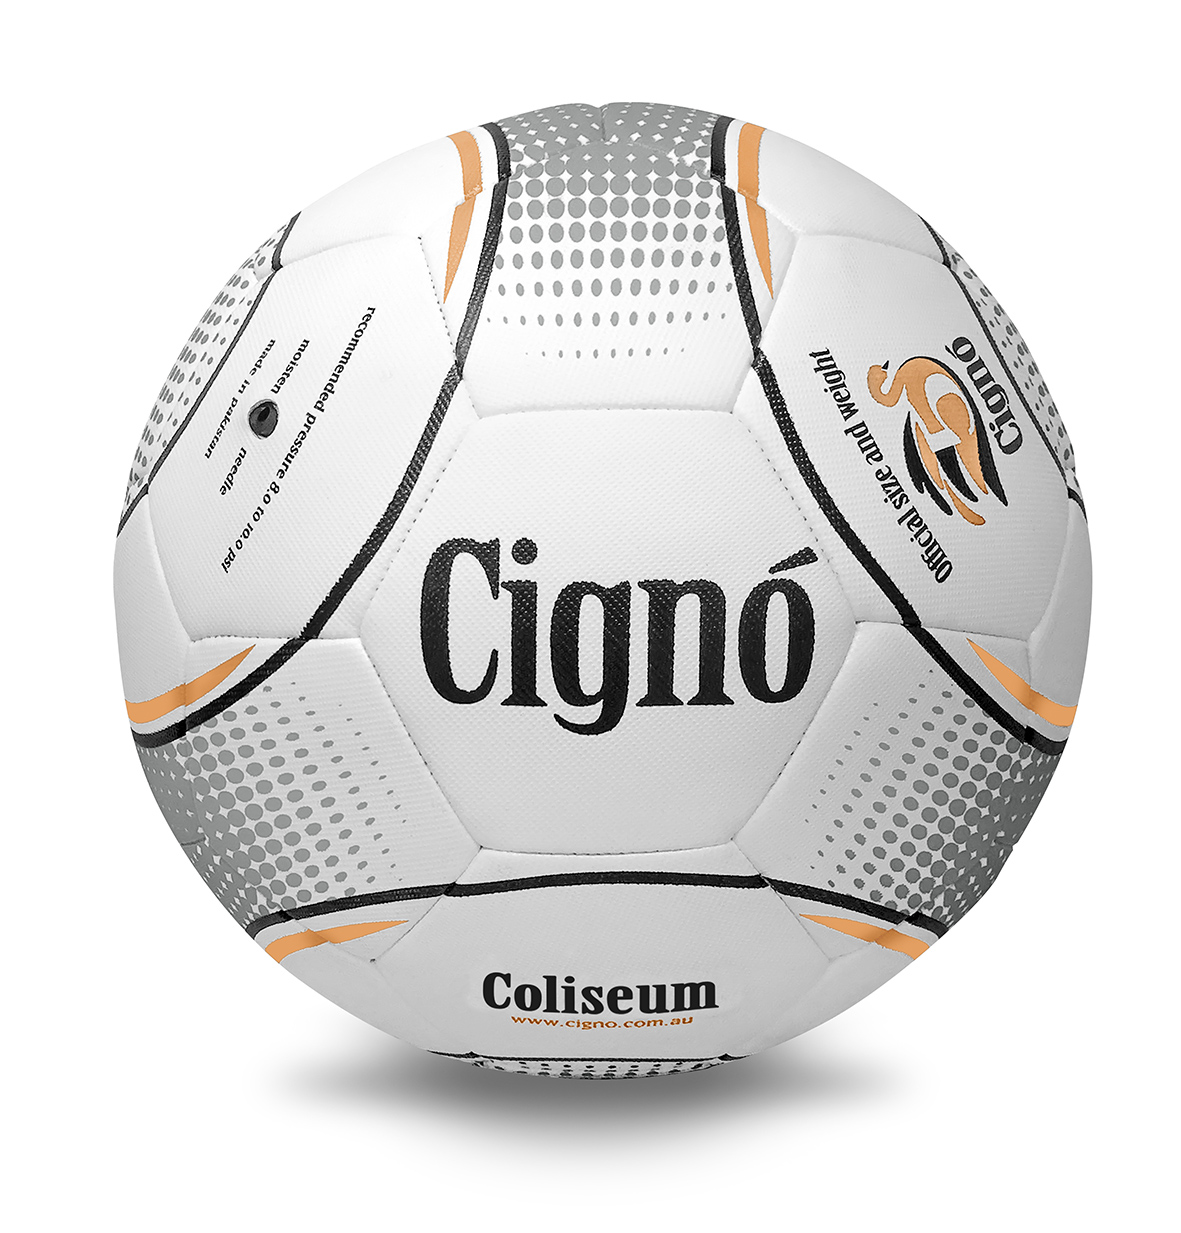 Cigno Coliseum Football